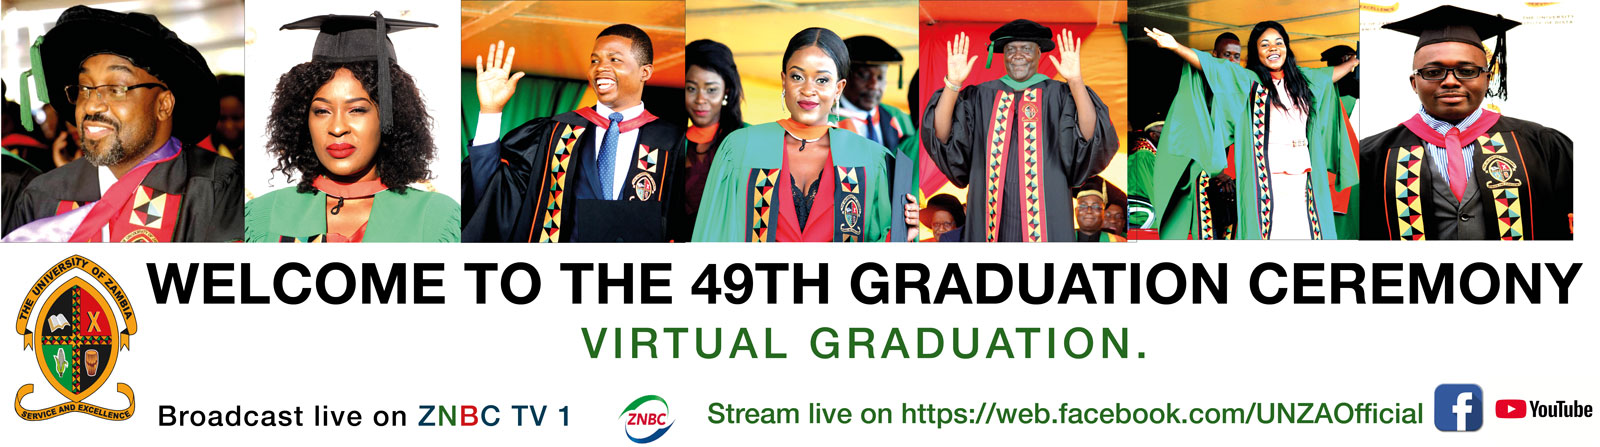 The 49th Graduation Ceremony, University of Zambia. Virtual Graduation